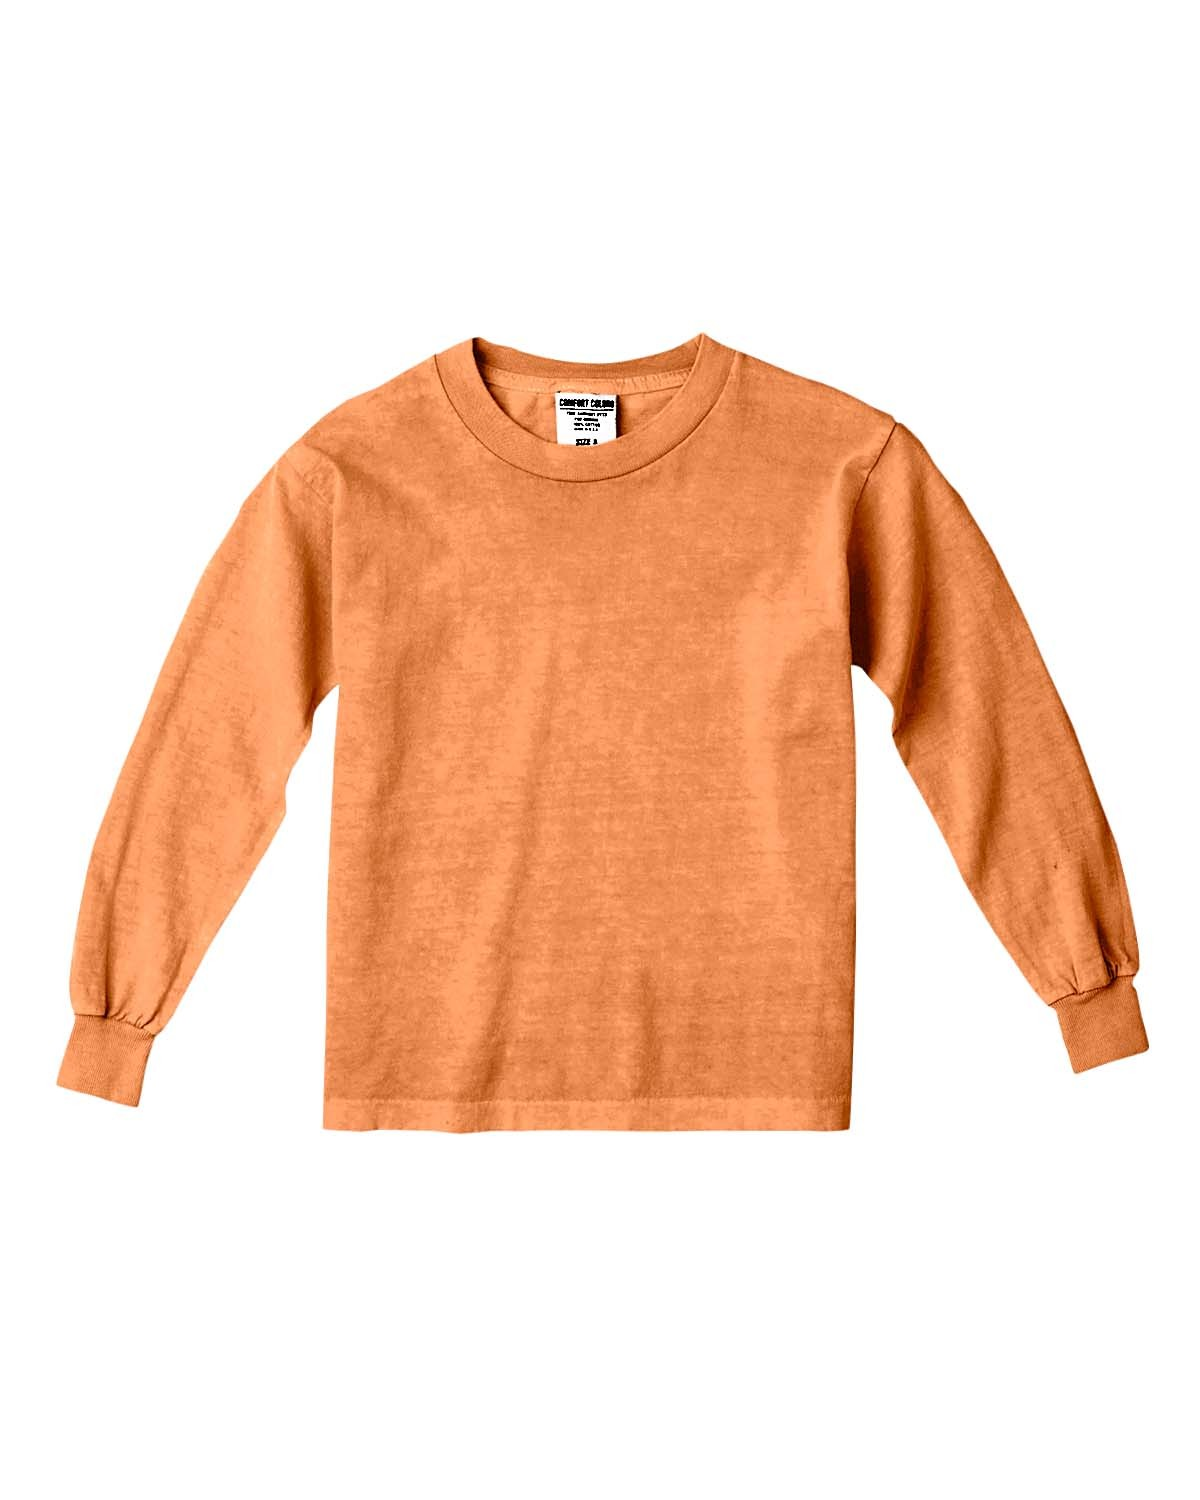 C3483 Comfort Colors Drop Ship MELON